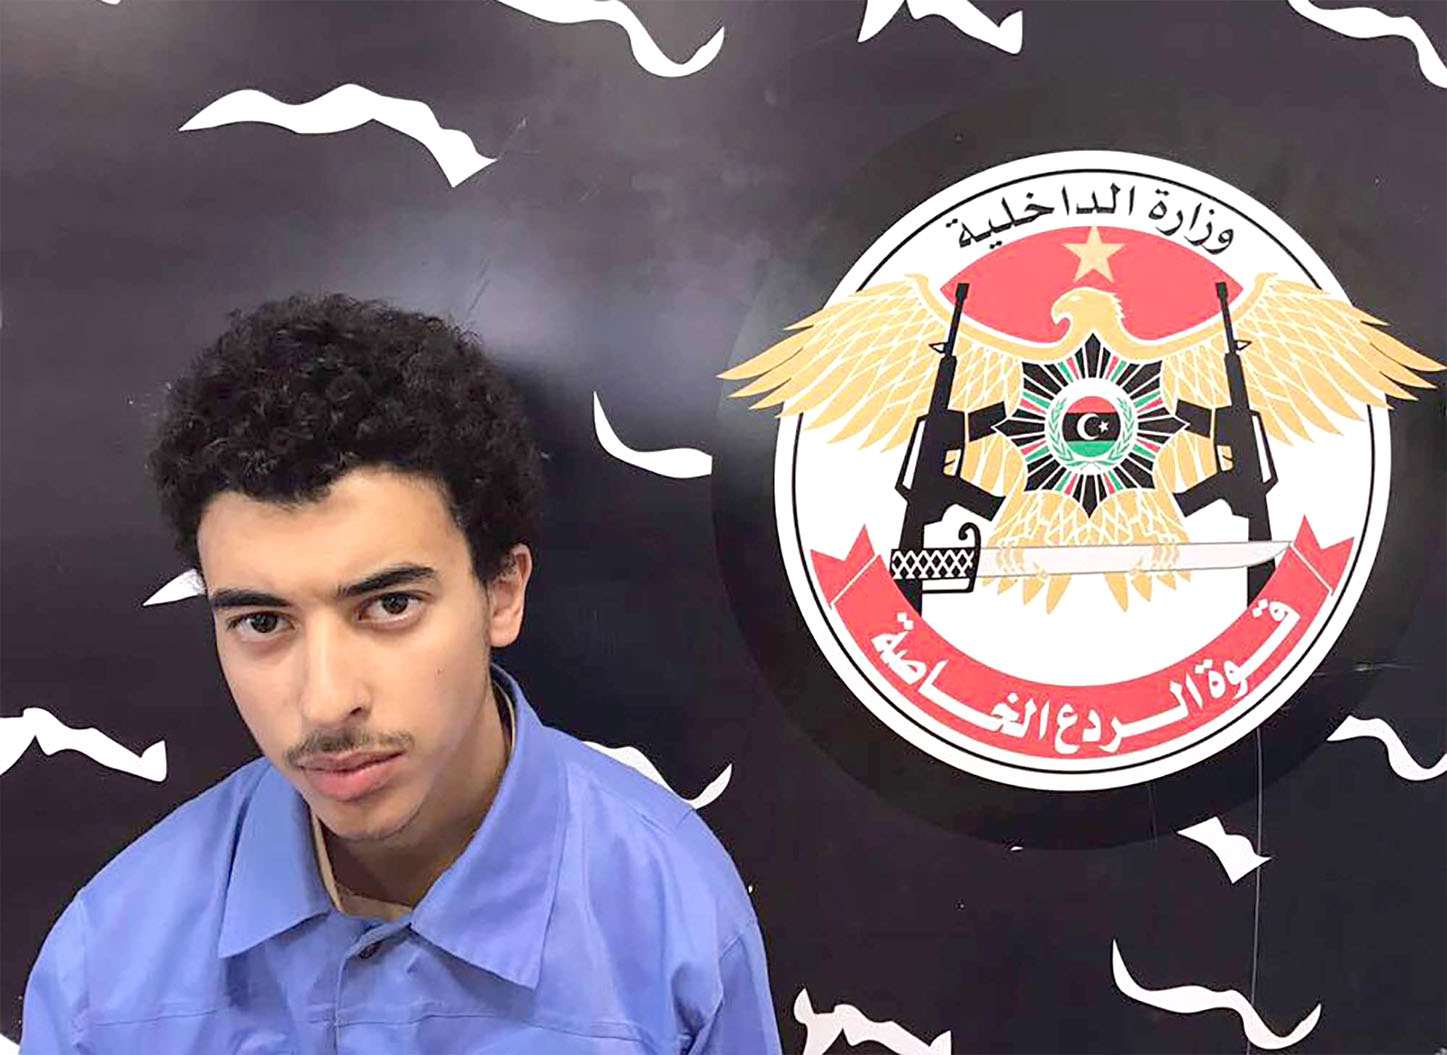 A file picture shows Hashem Abedi, the brother of the man who carried out the bombing in the British city of Manchester. (AFP)